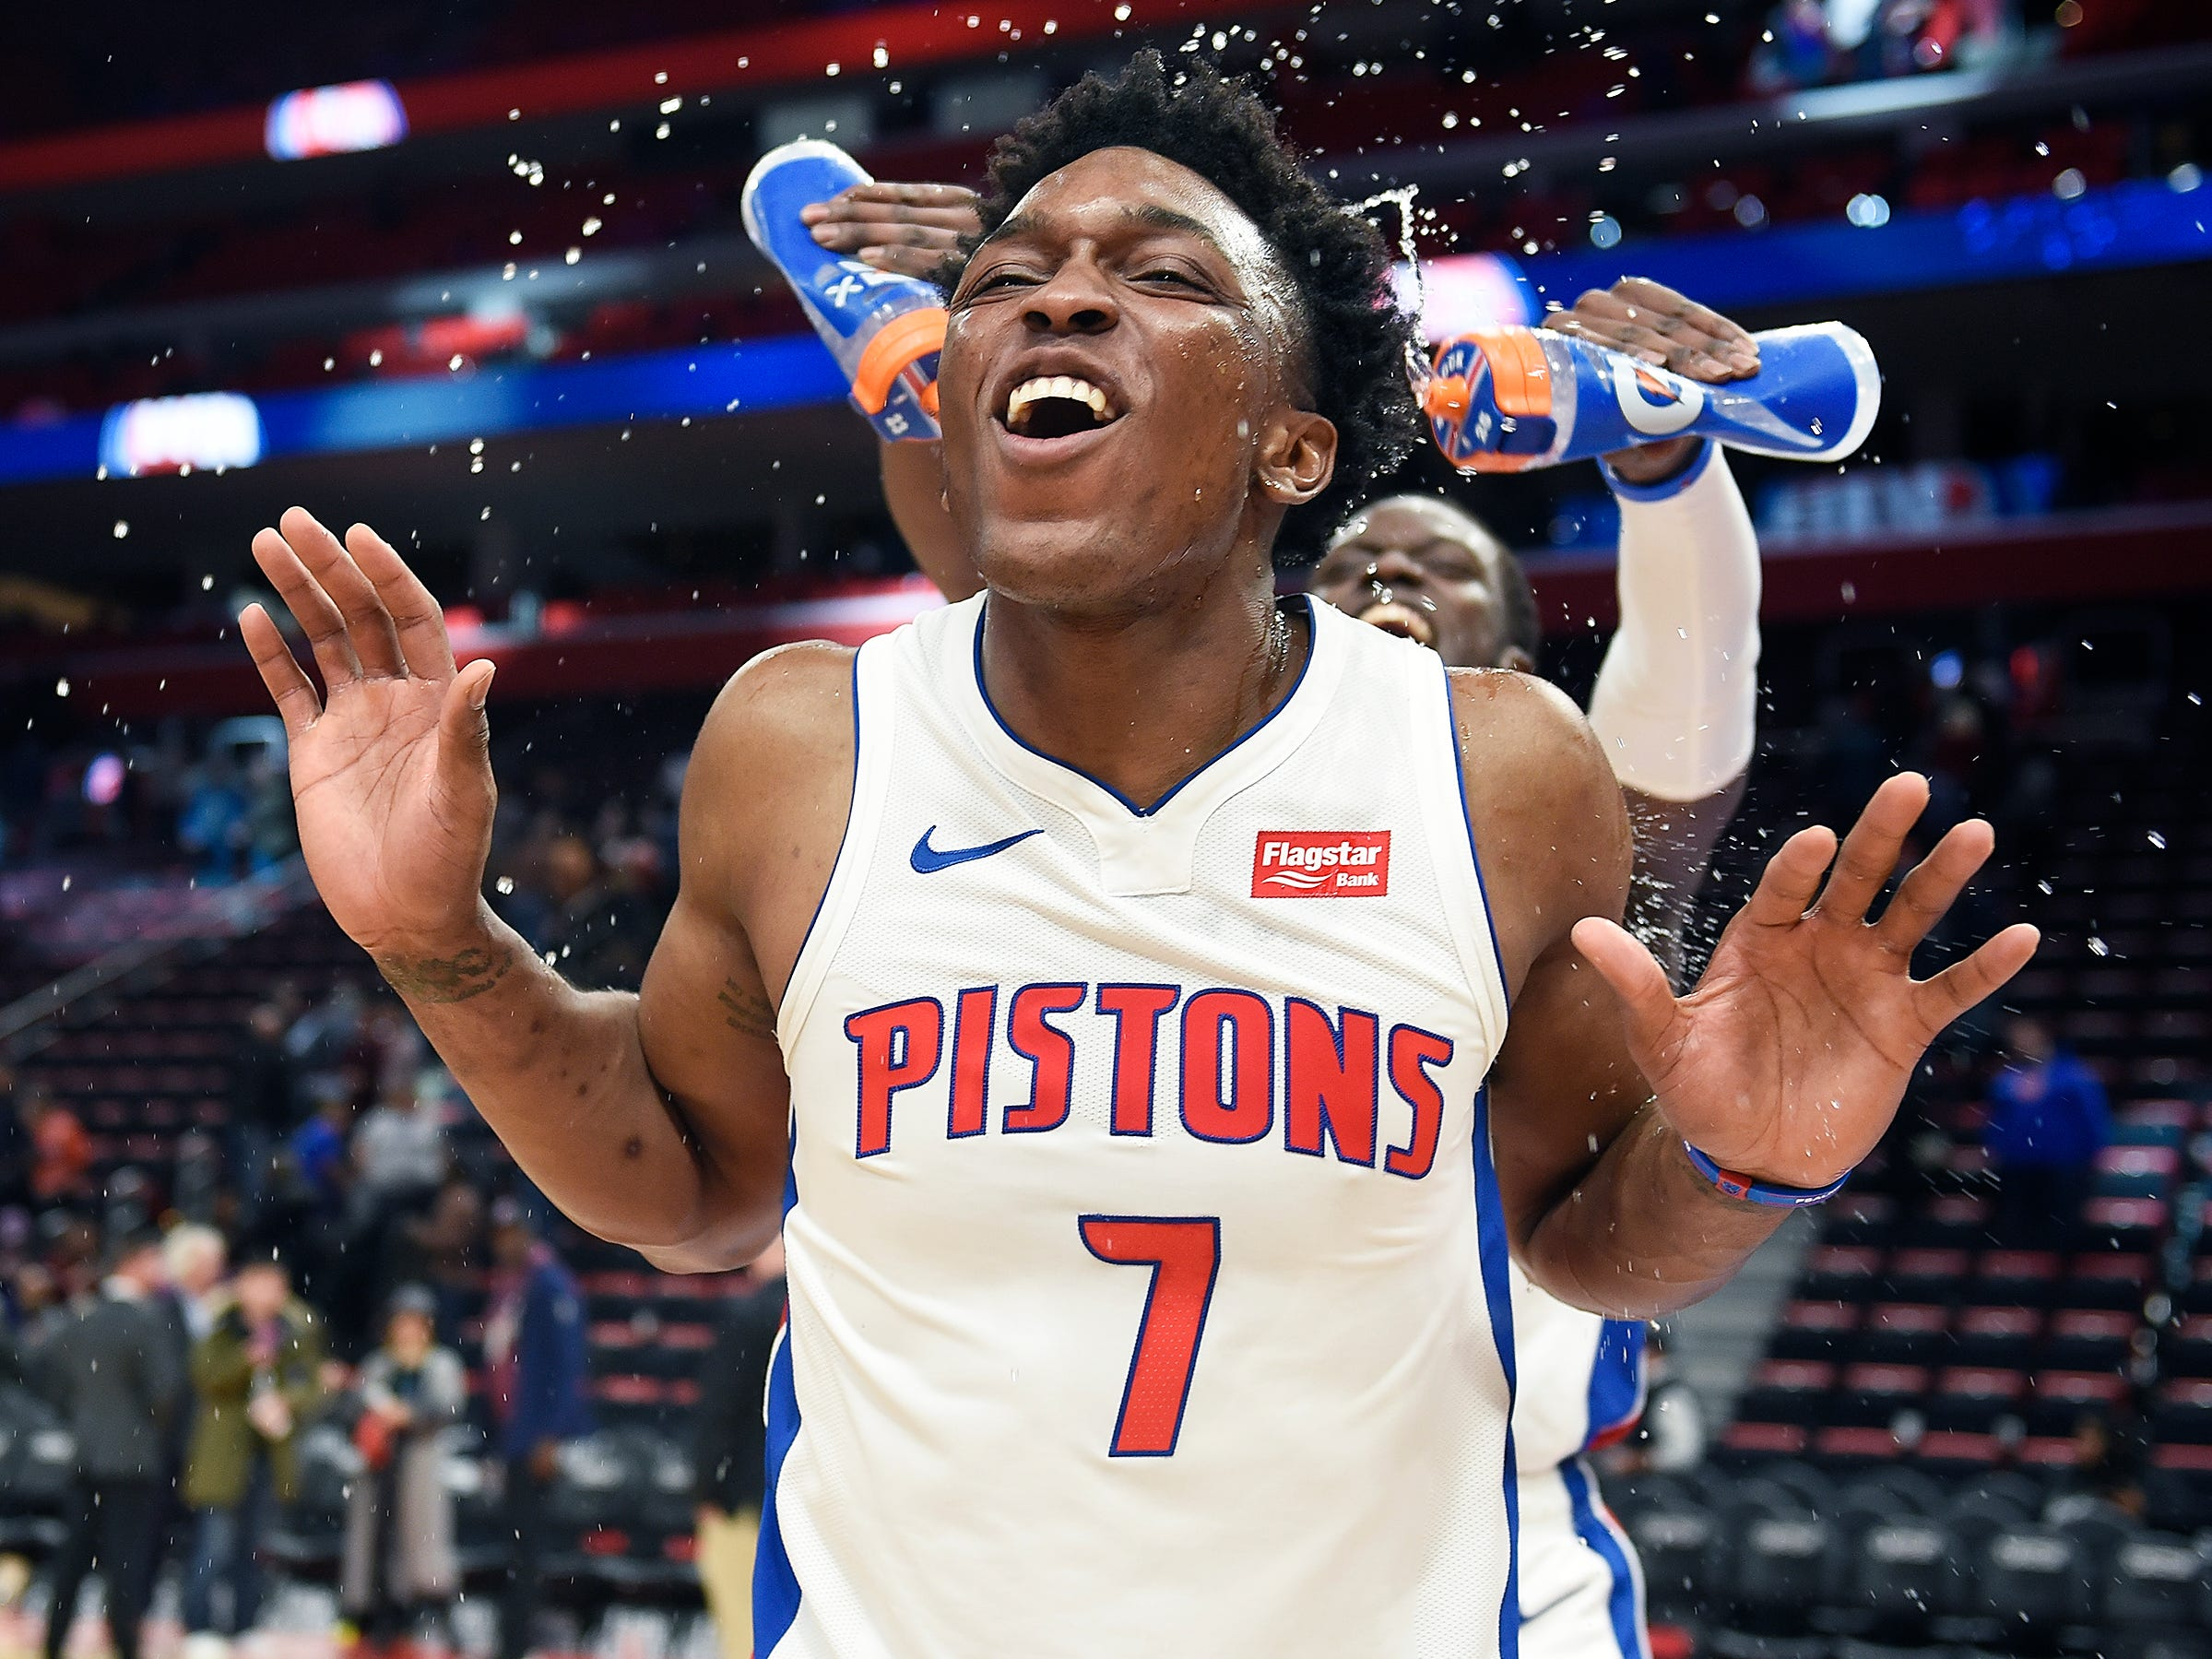 Stanley Johnson -- Stats: 8.3 pts., 3.6 rebs., 27% 3FG in 36 games. Age: 22. He began the season as a starter, but he's found a better fit coming off the bench as a pace-setter and defender. His shooting still needs to improve greatly to be a better 3-and-D option. He can help himself with more consistent play. Grade: C